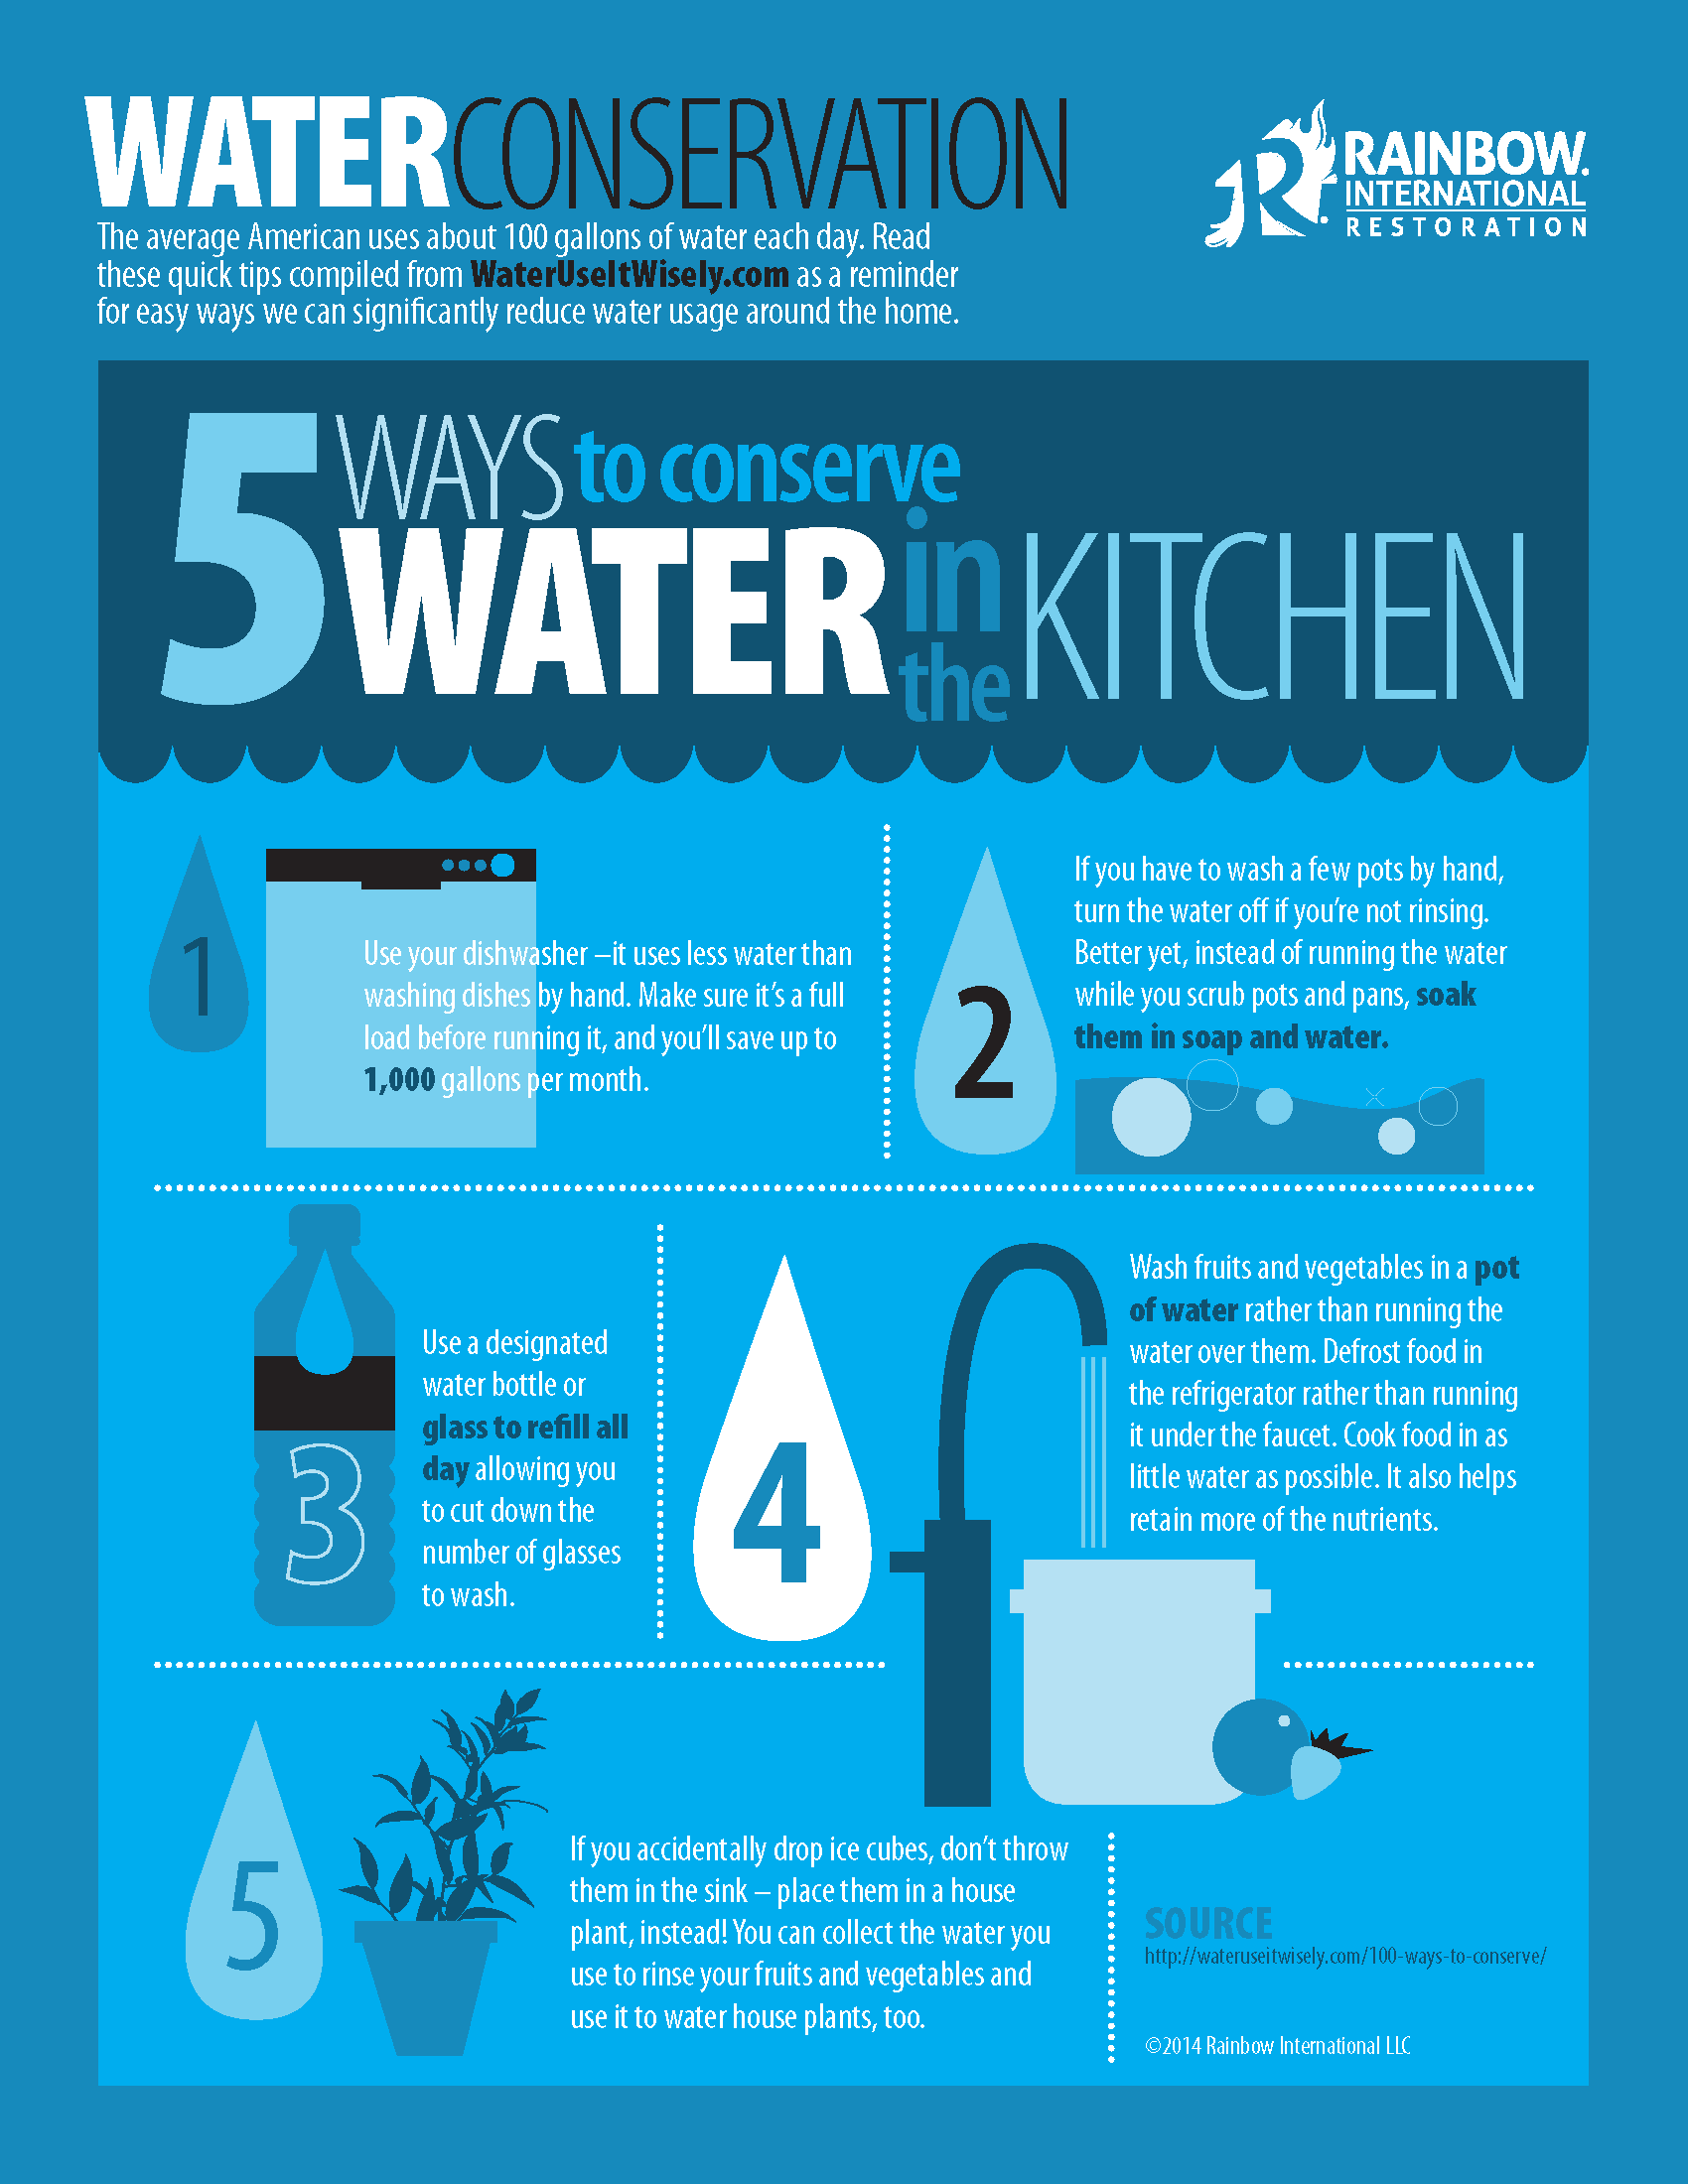 These are some great tips on conserving water i your kitchen ...